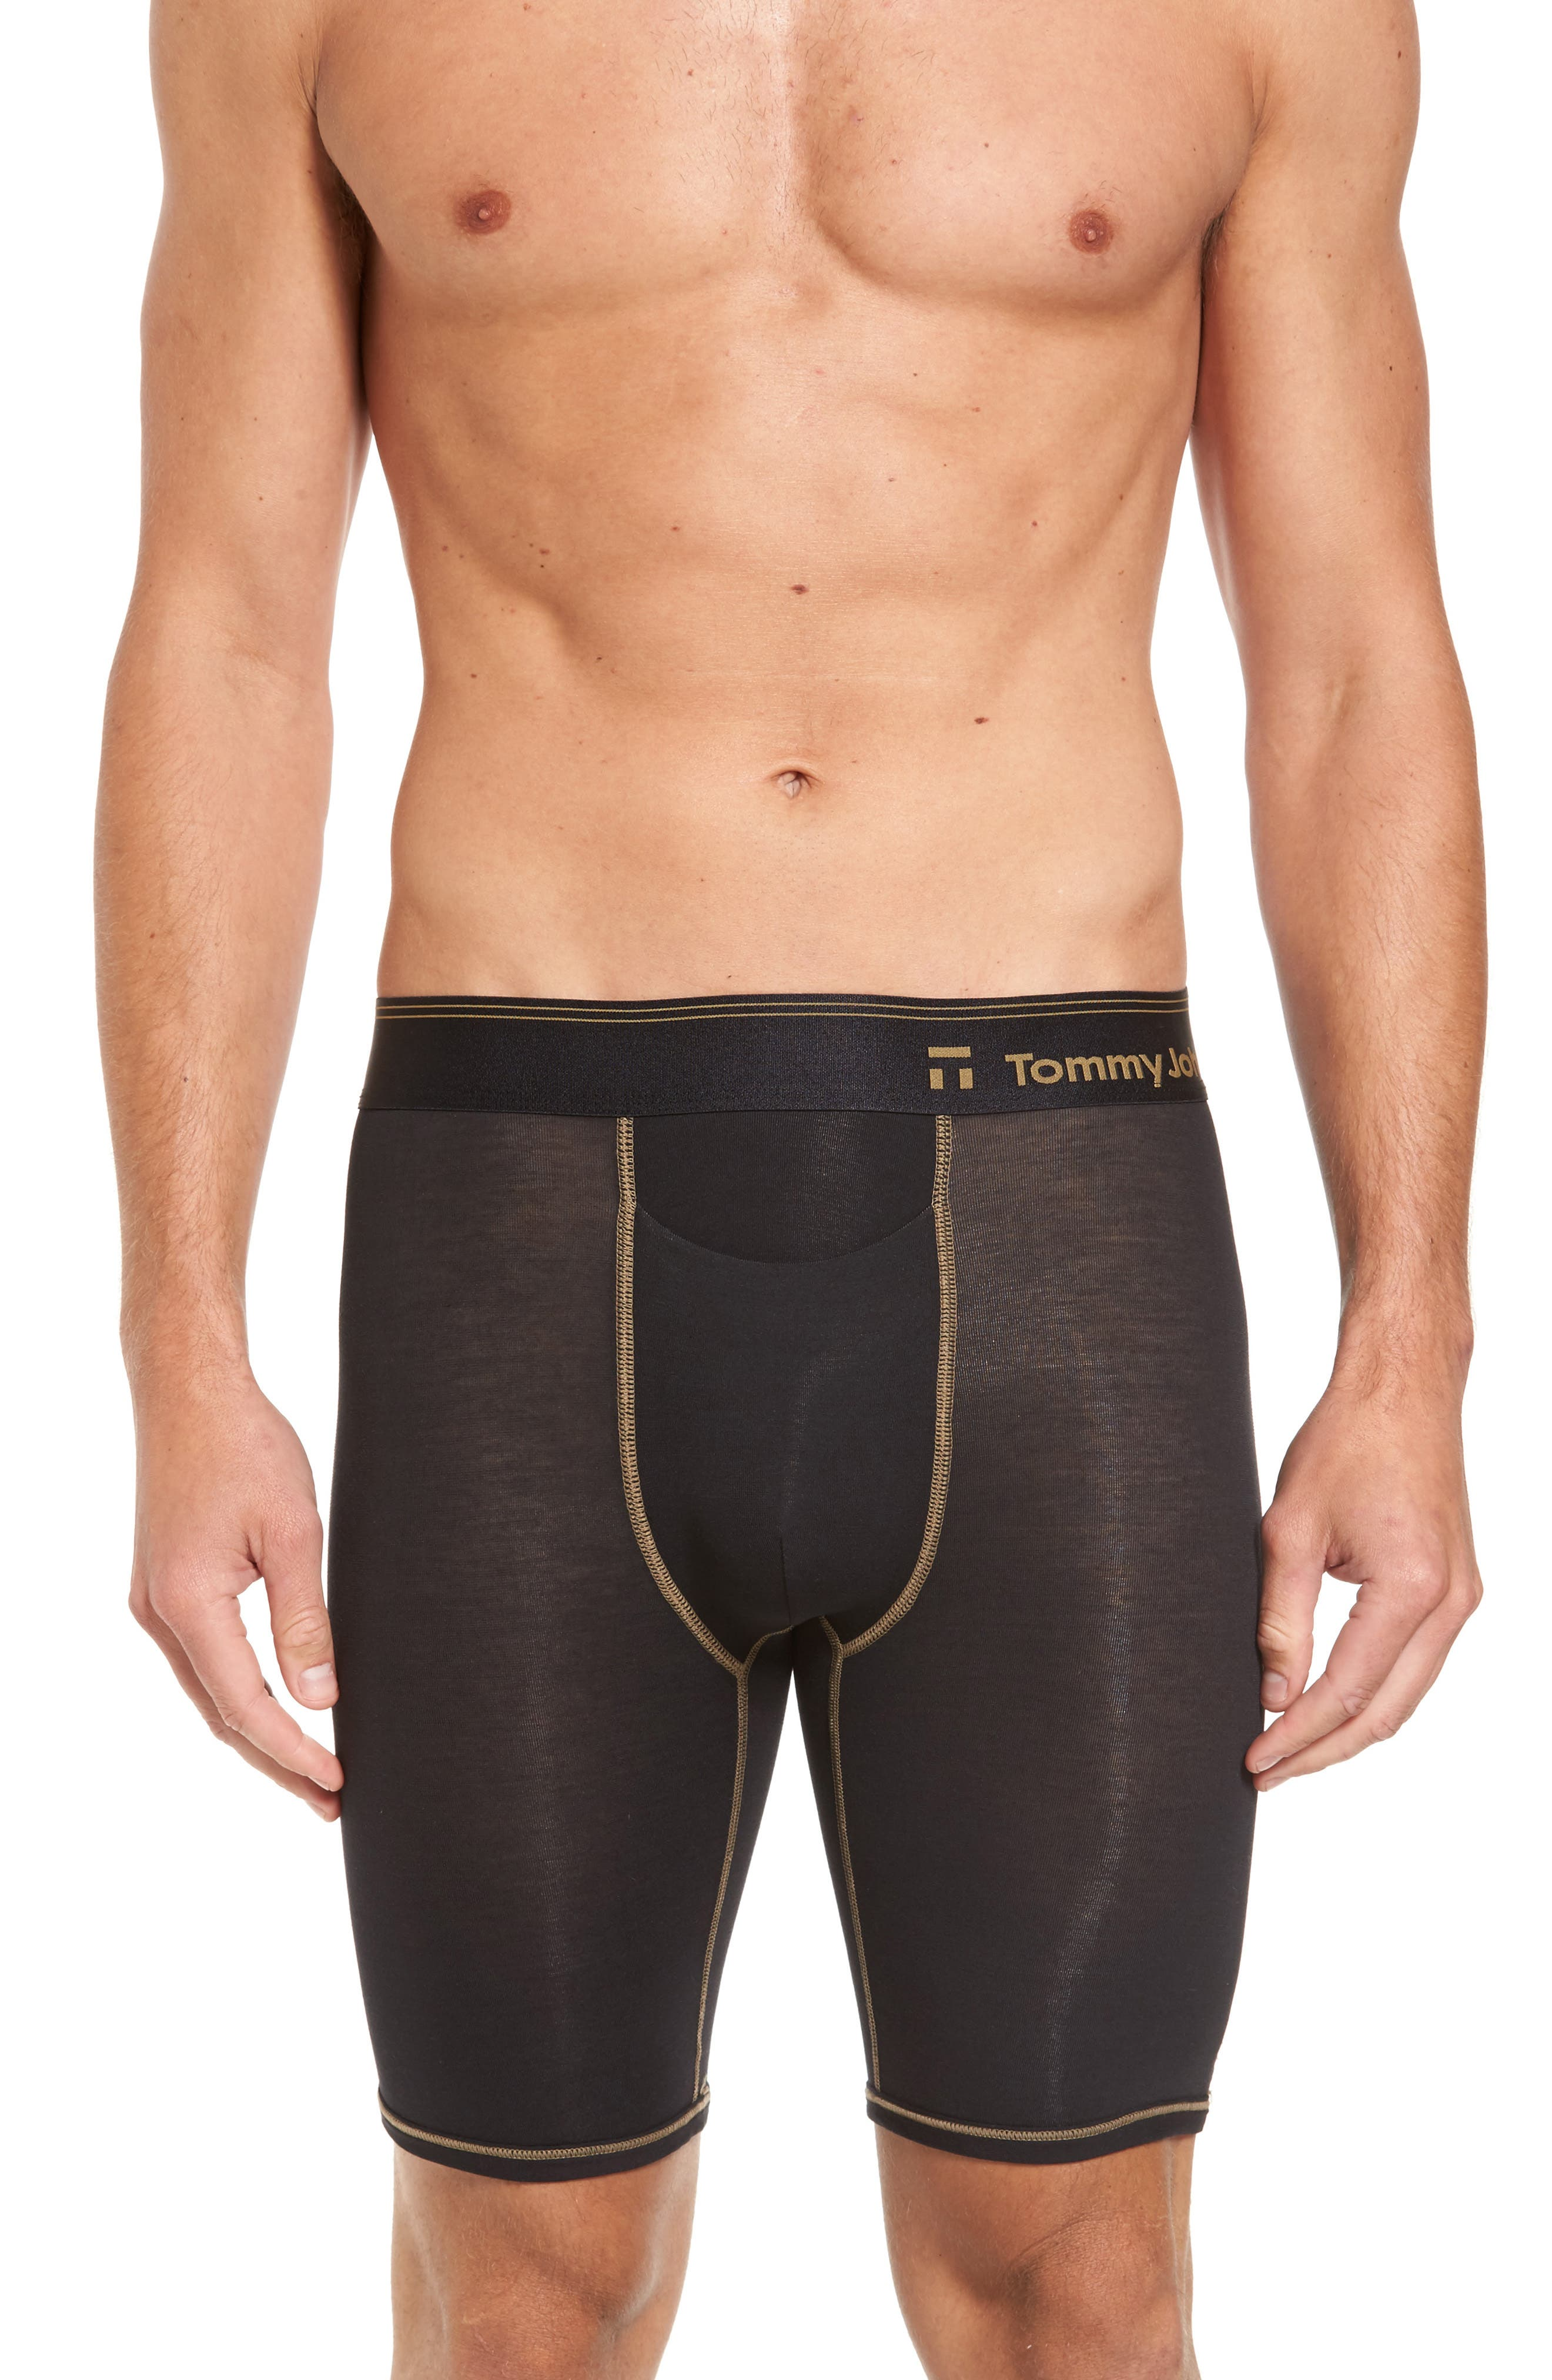 Tommy John Second Skin Holiday Boxer Briefs